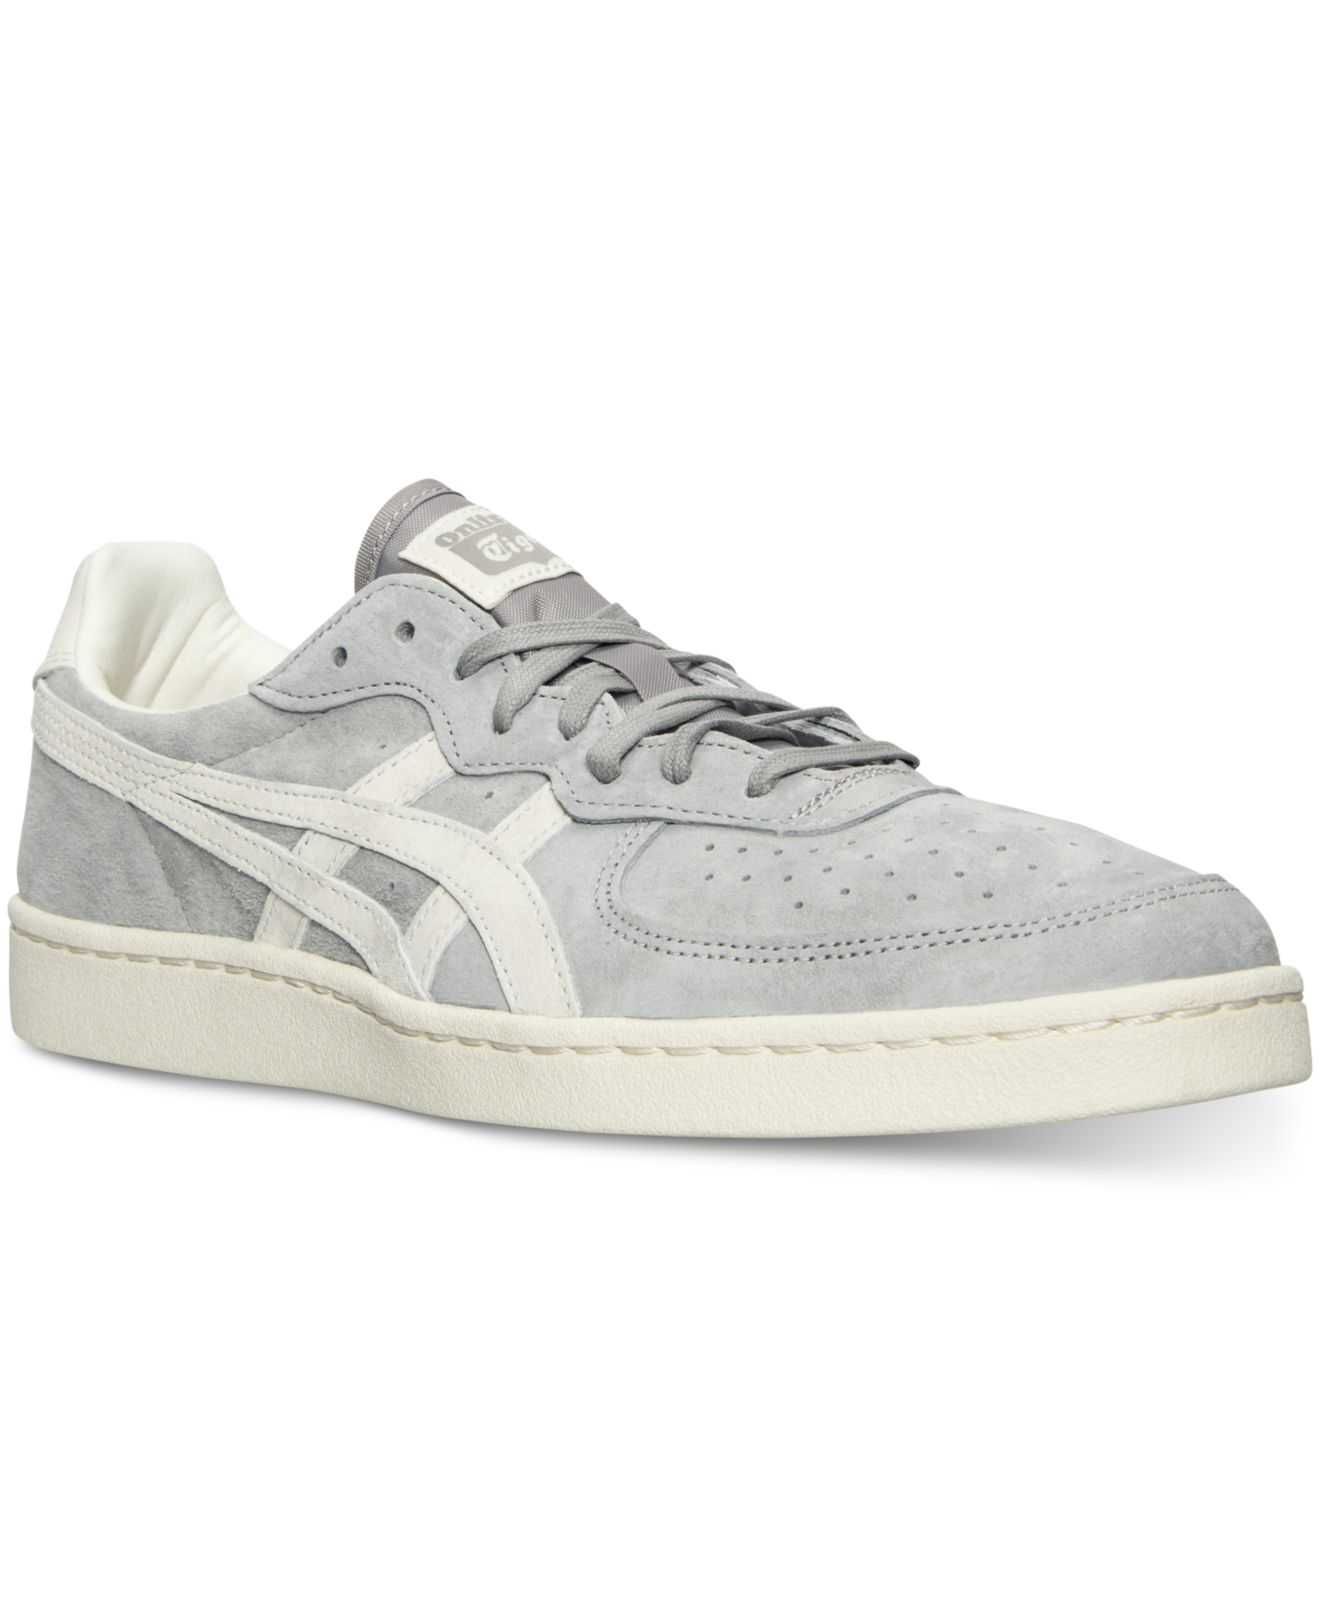 asics s onitsuka tiger gsm casual sneakers from finish